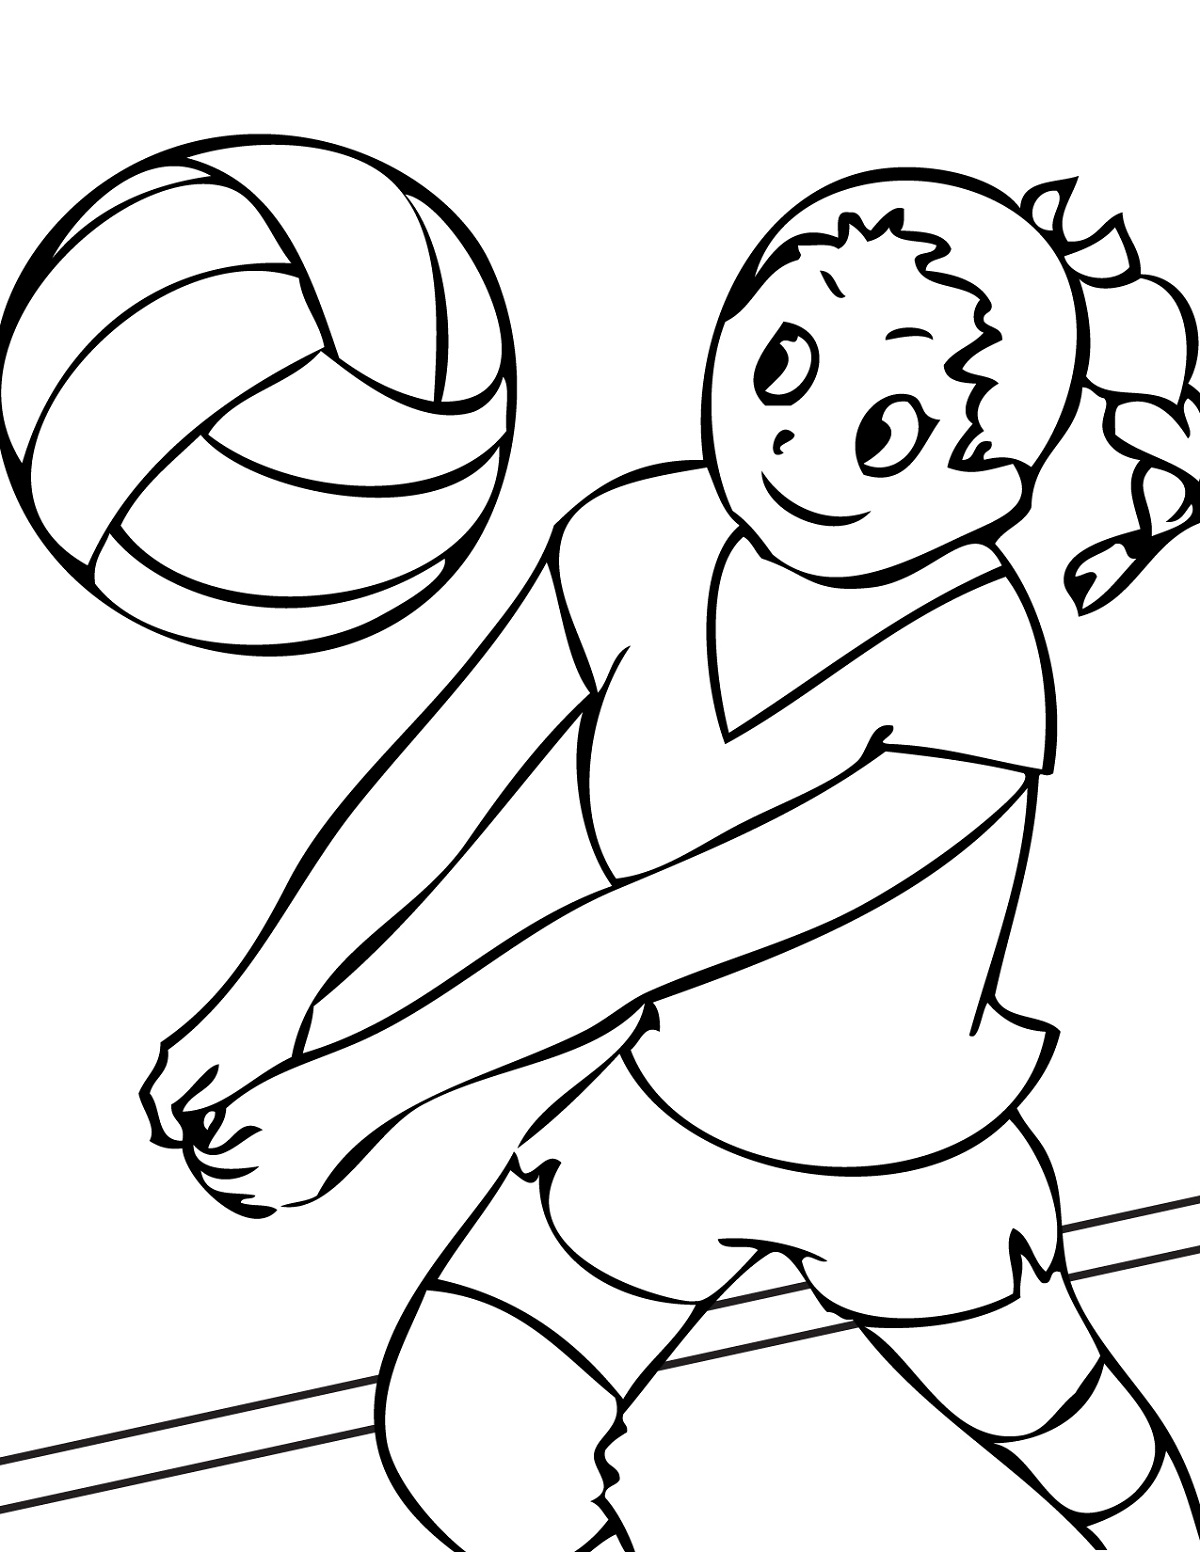 sports worksheets for kids coloring